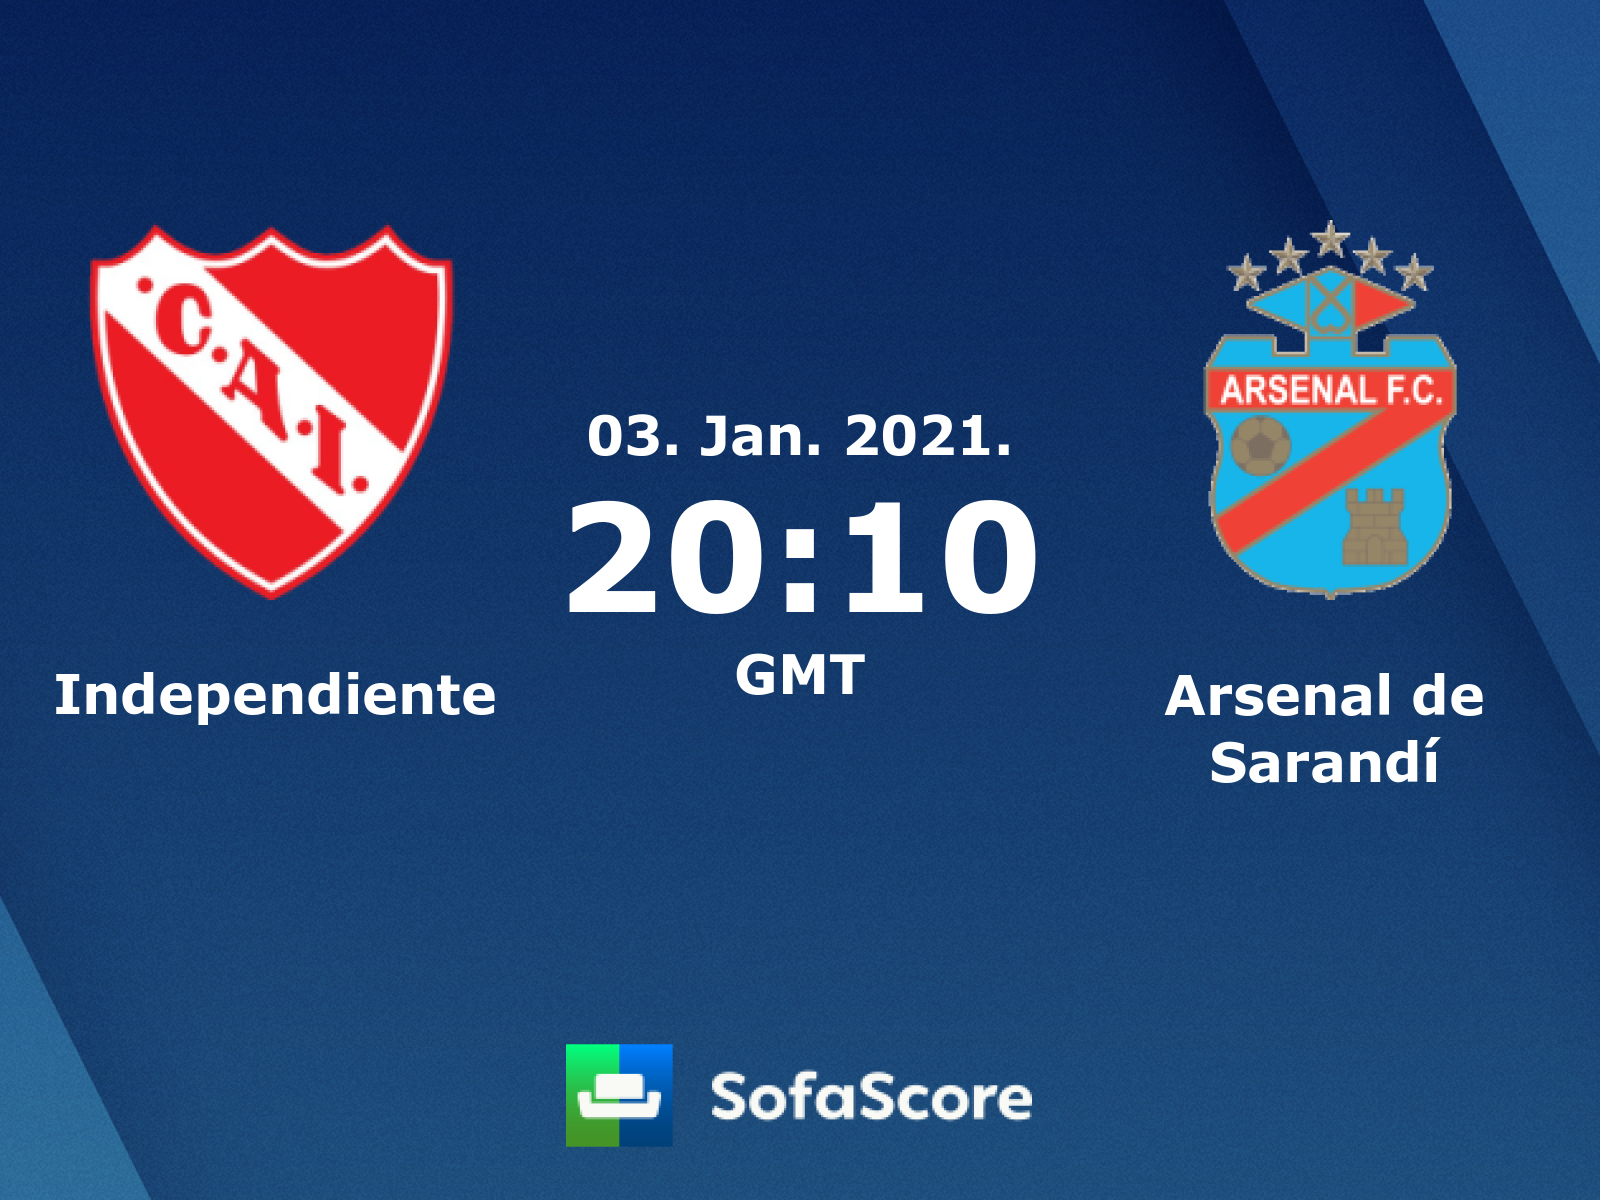 Arsenal sarandi vs independiente bettingexpert tips spezia vs crotone betting tips